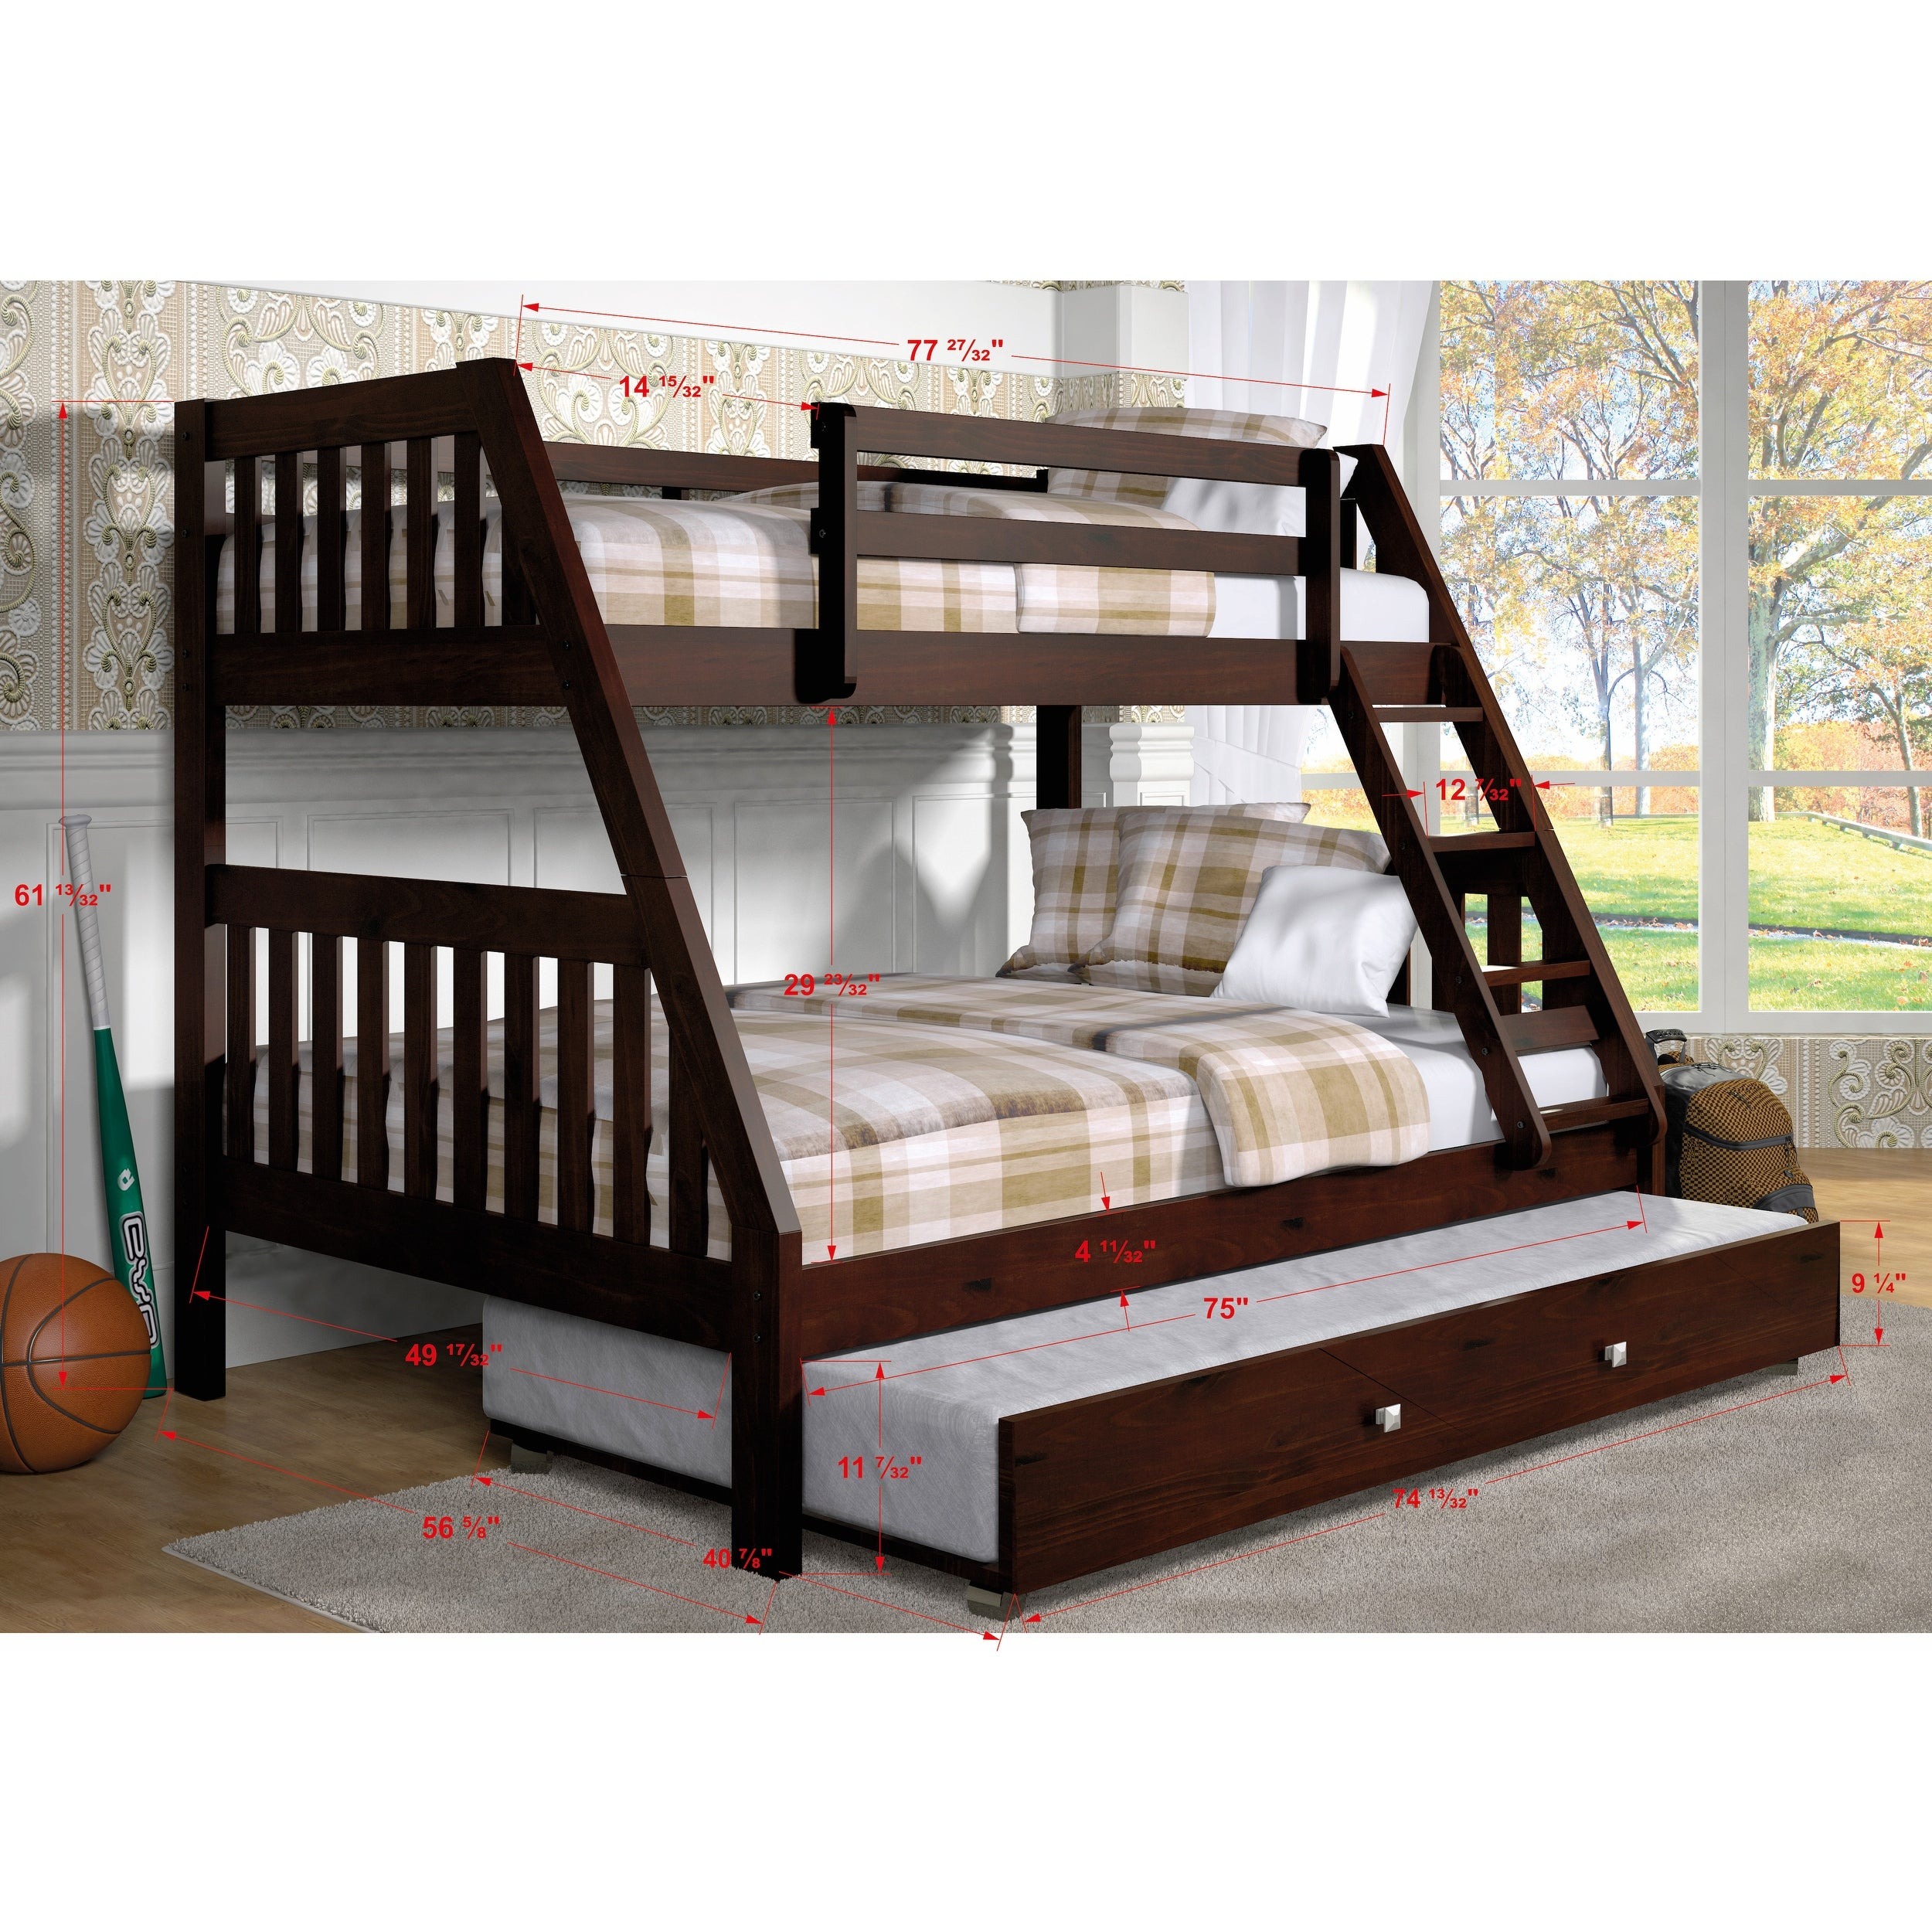 Shop Donco Kids Mission Style Dark Cappuccino Twin Over Full Bunk Bed With Trundle Bed Overstock 13751398